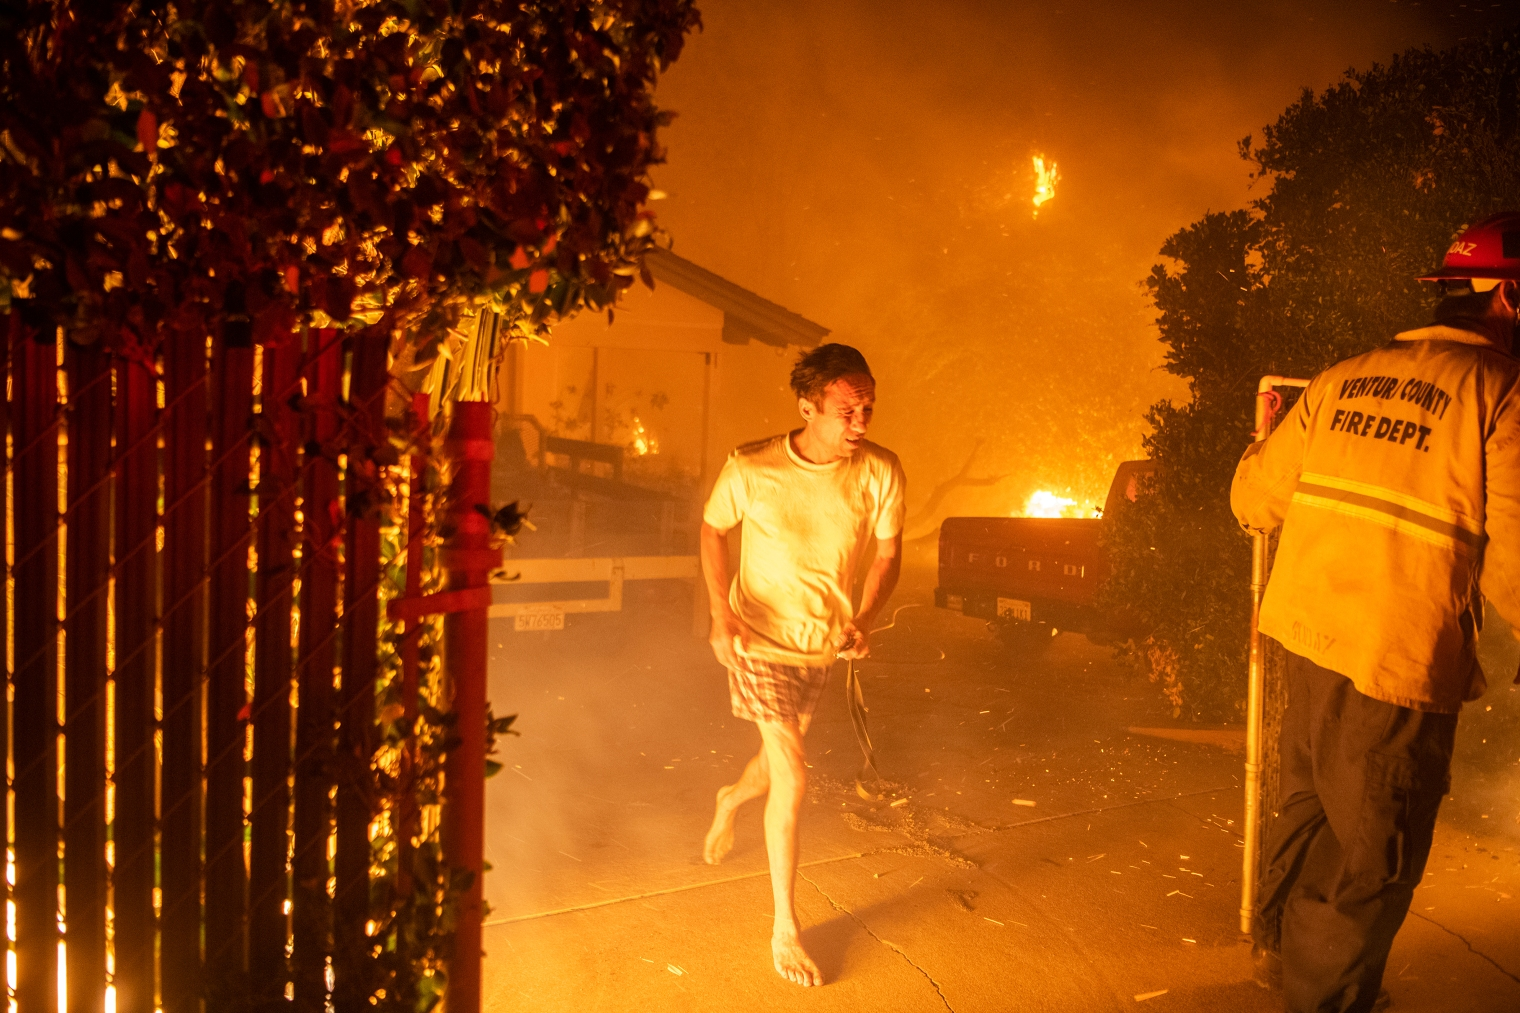 A resident flees his home in Thousand Oaks, Calif. during a wildfire